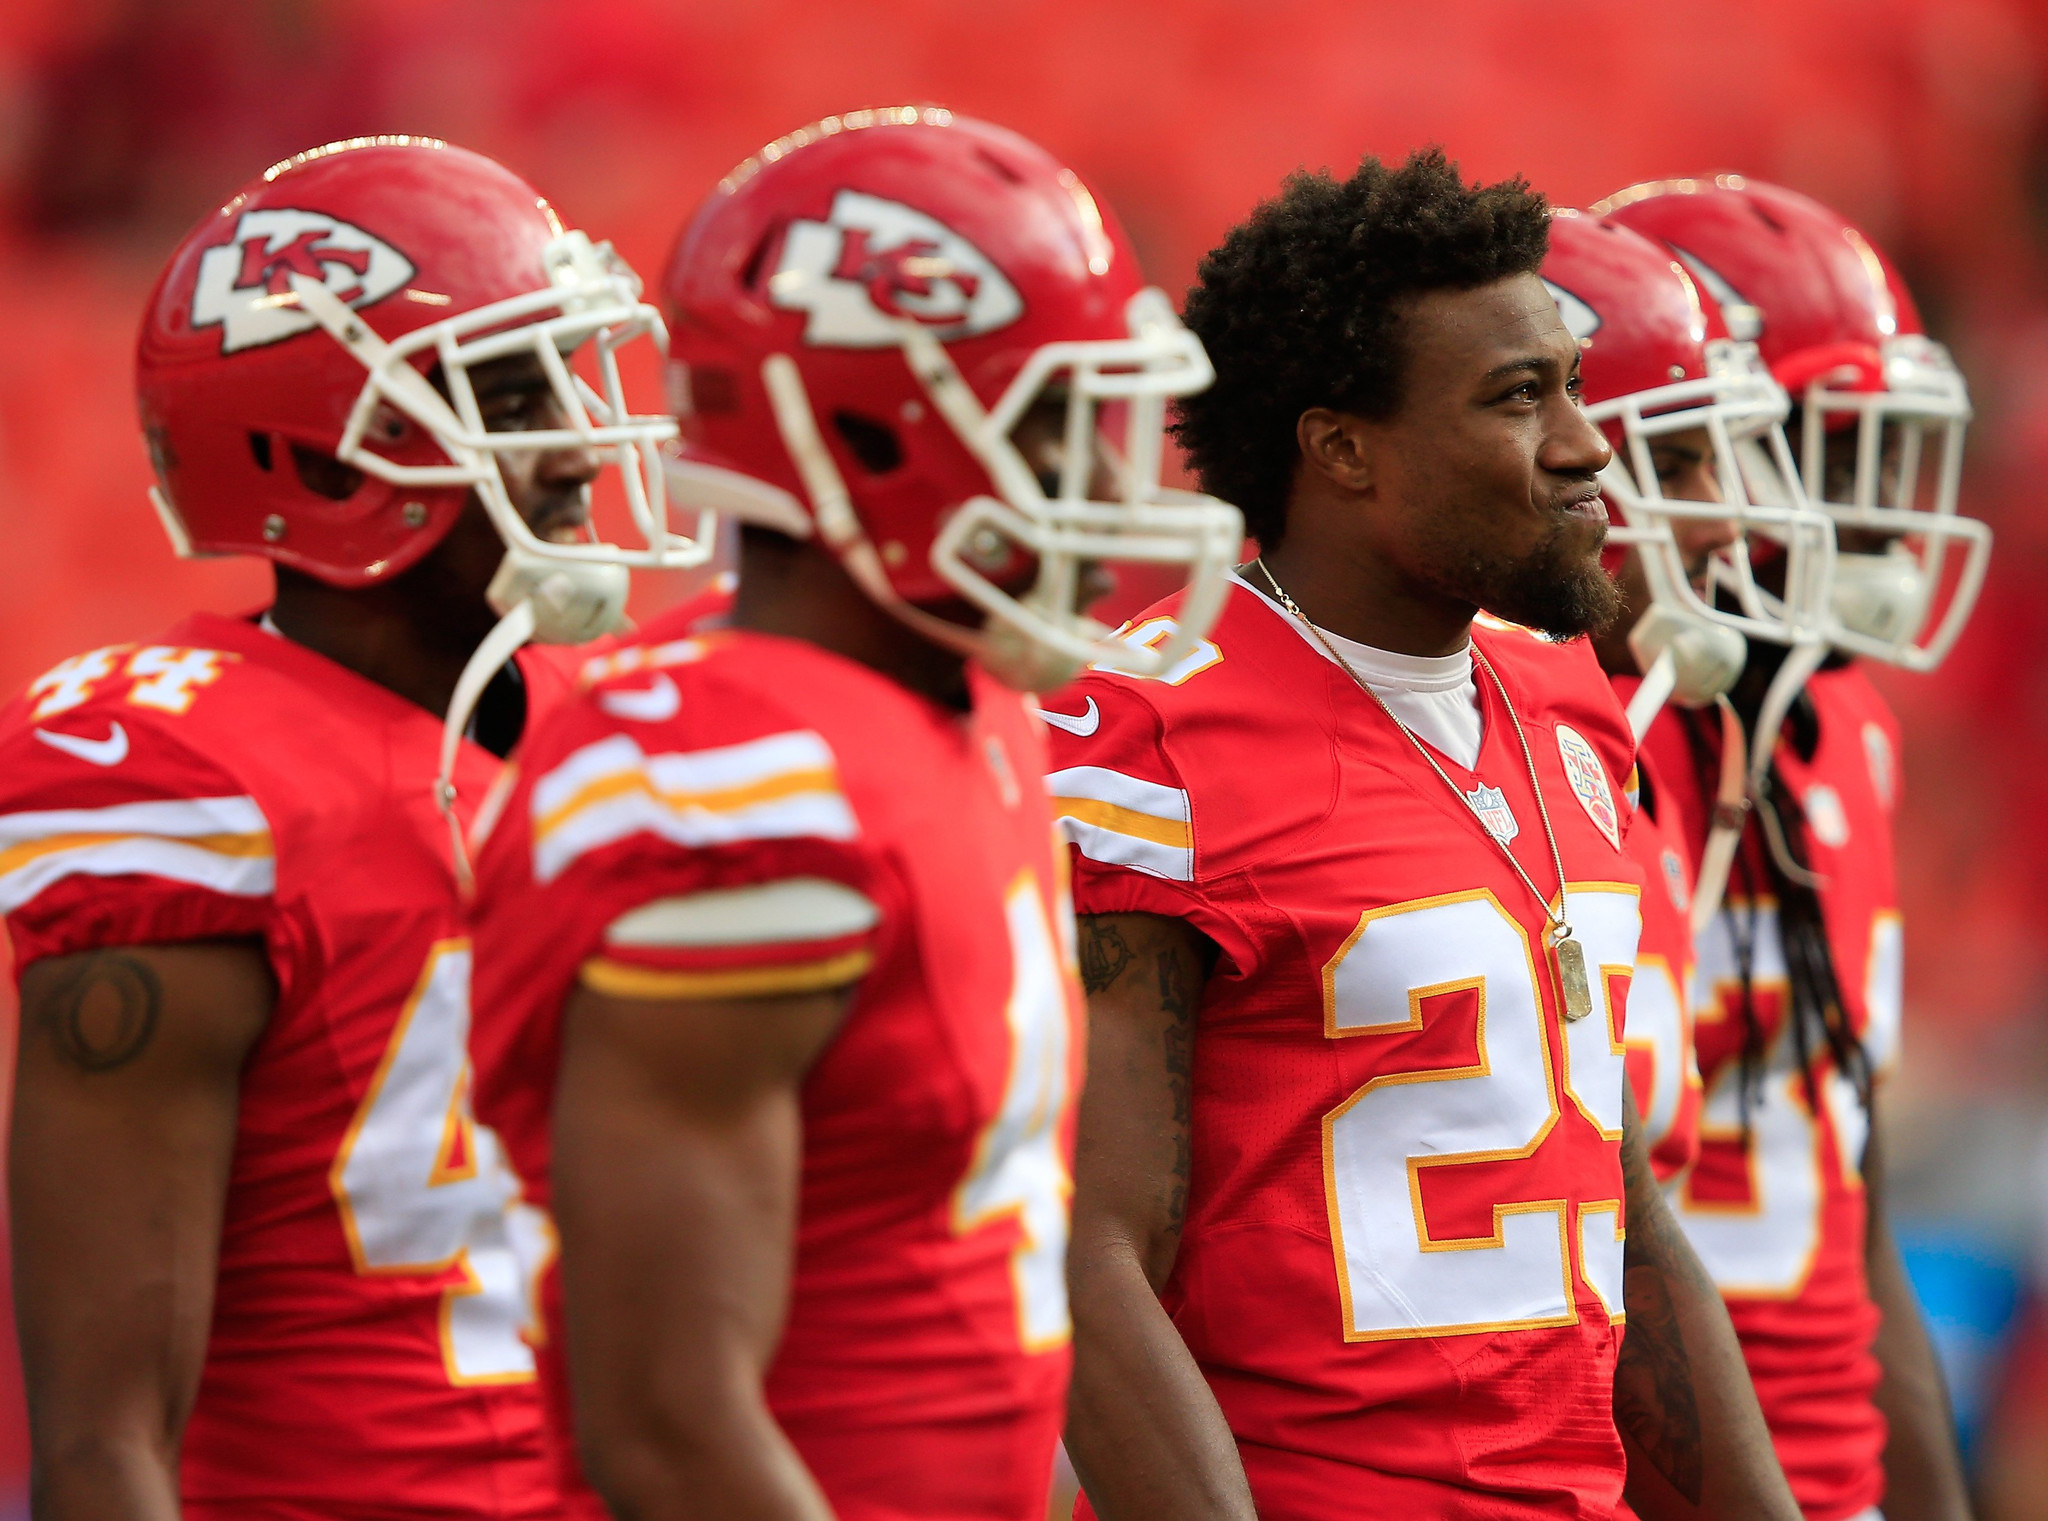 Chiefs Eric Berry cleared to return after lymphoma treatments